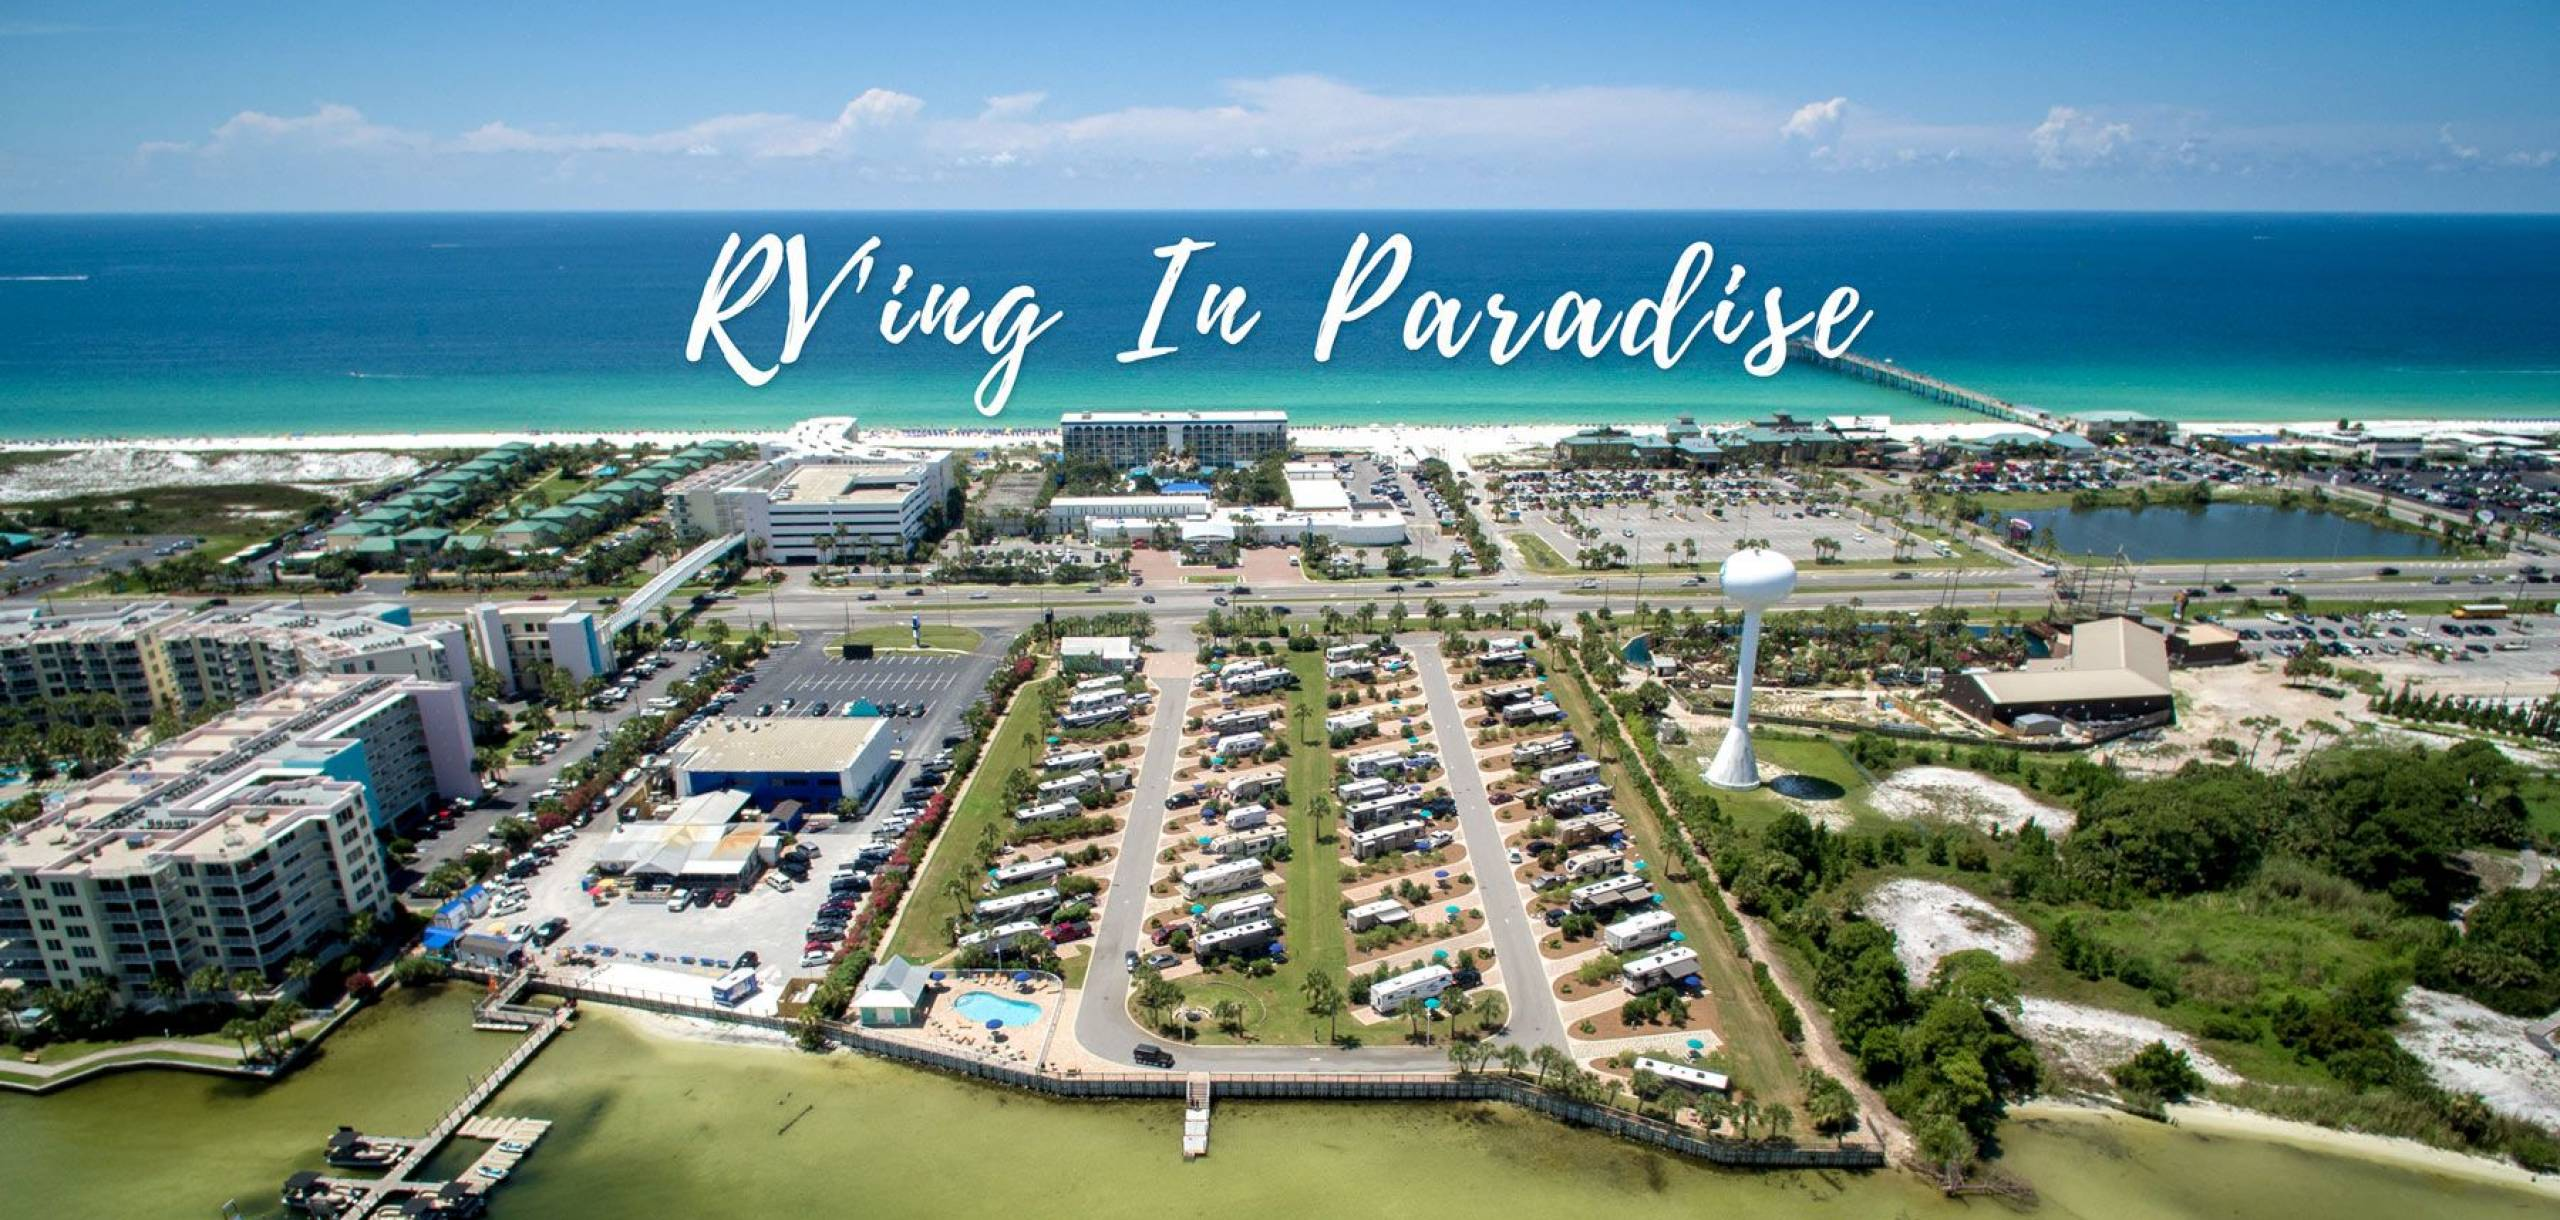 RV Resort Campground near the Gulf of Mexico Destin and Fort Walton Beach